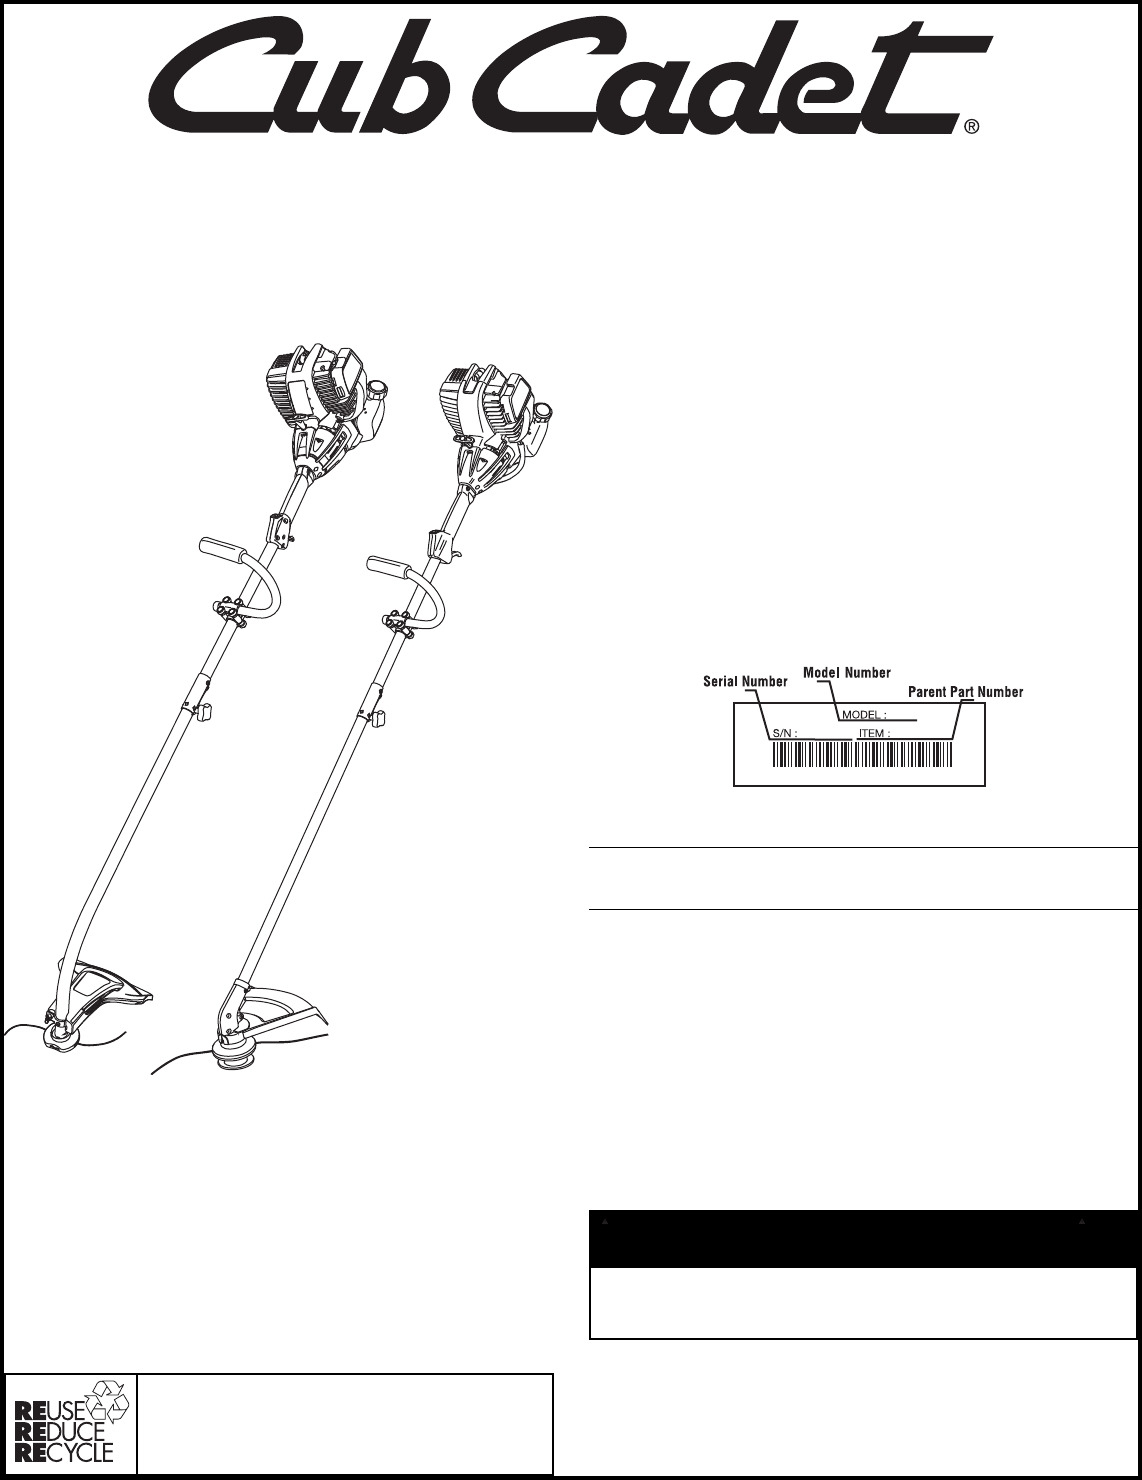 Weed Eater Rt10 Parts List And Diagram Ereplacementpartscom